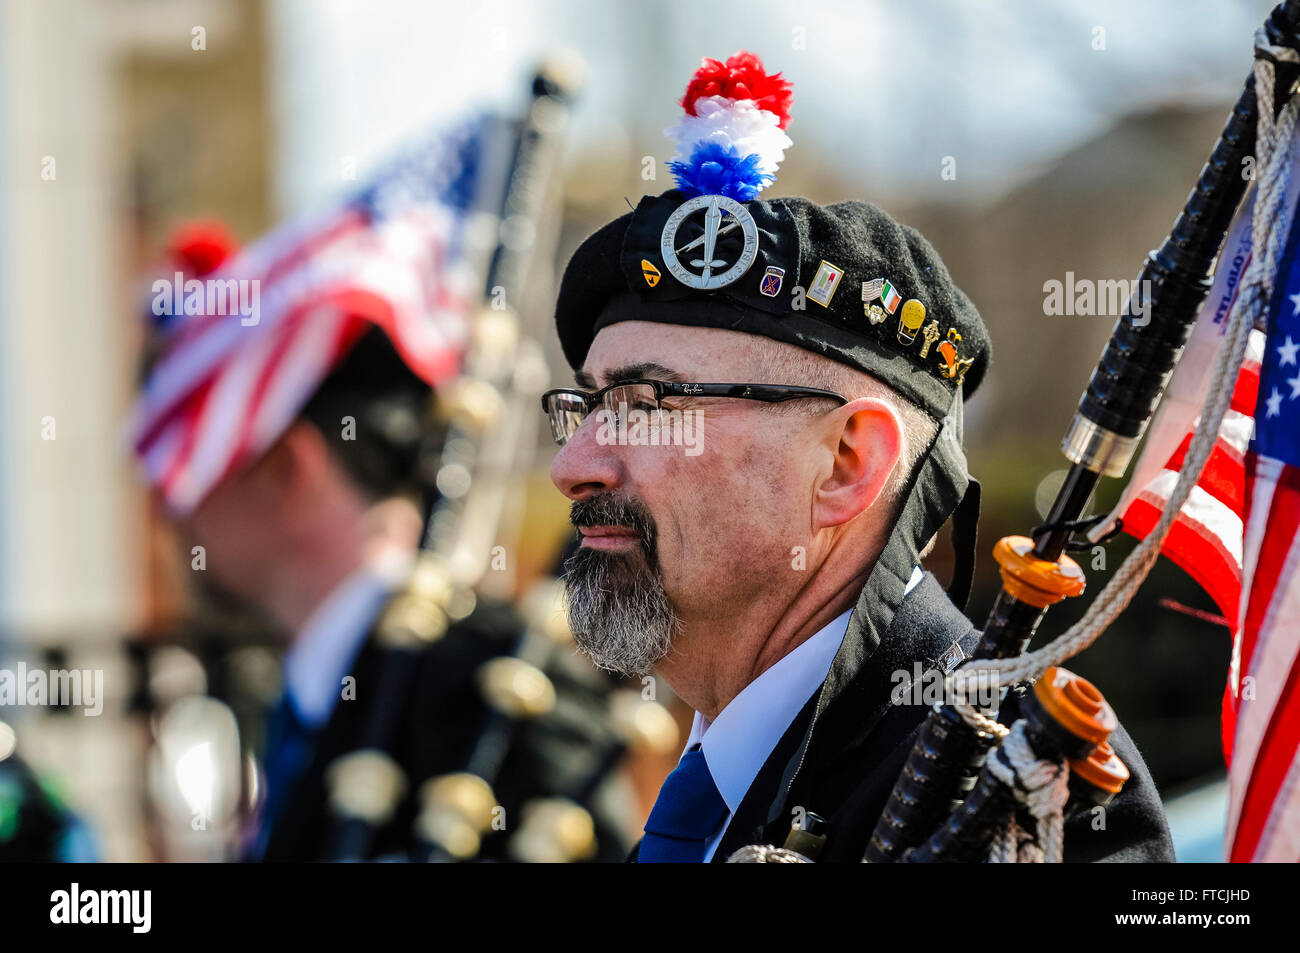 Belfast, Northern Ireland. 27 Mar 2016 - Bagpiper from New York at the Easter Rising centenary celebration parade. Stock Photo